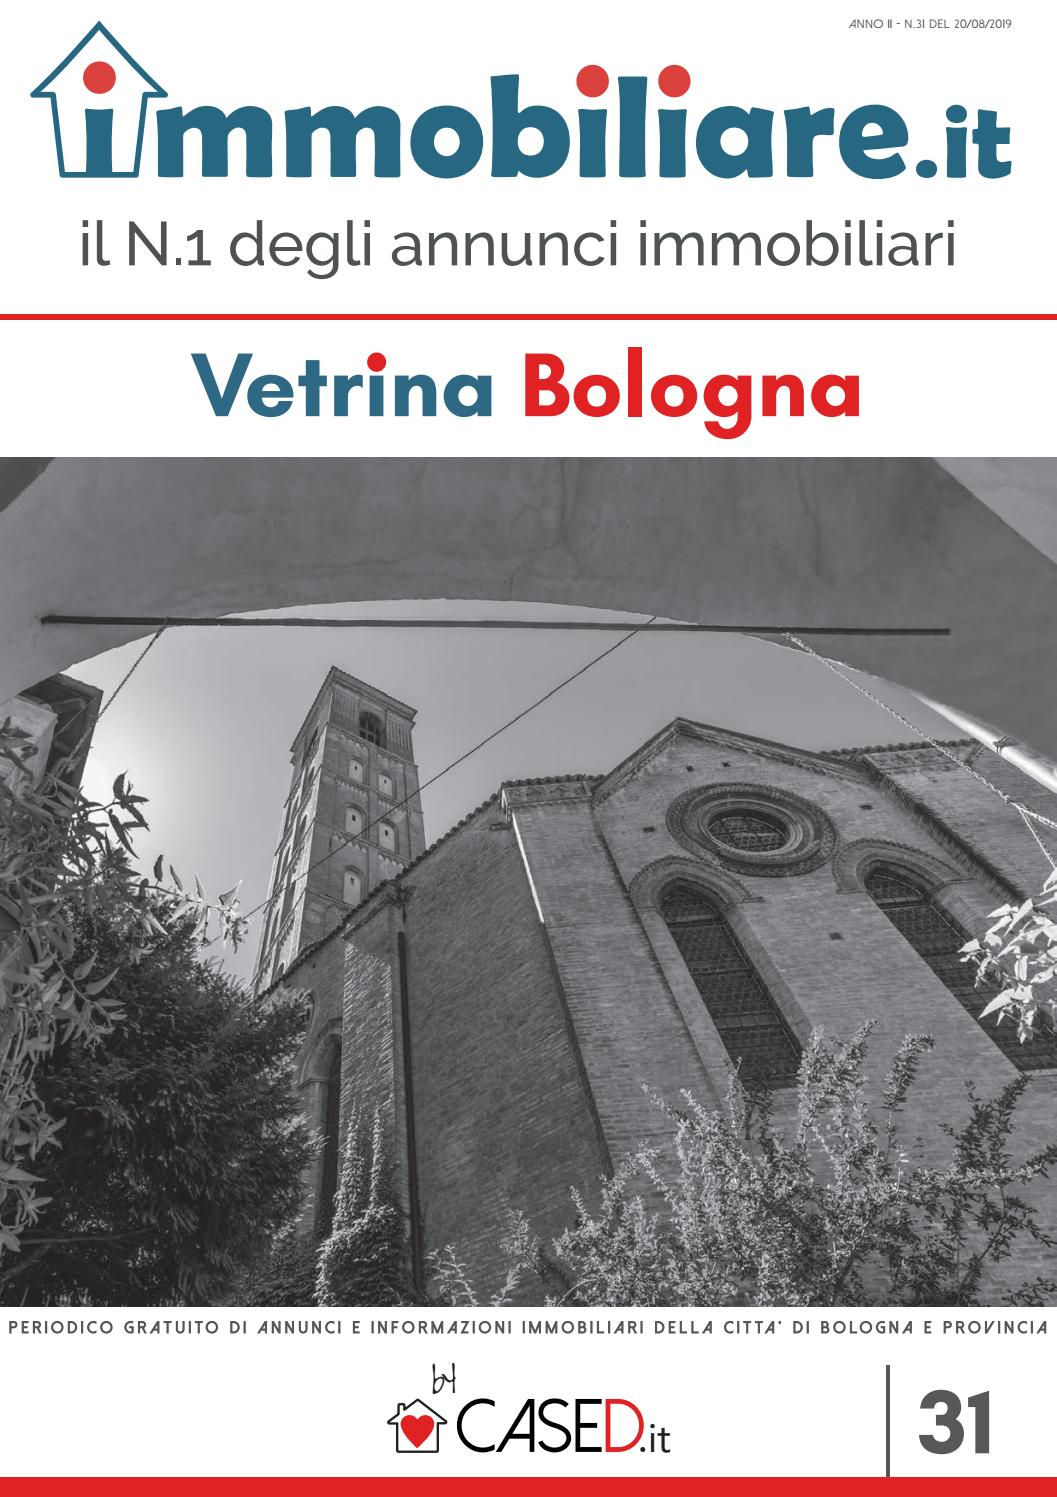 Spazio Vitale Studio Immobiliare vetrina bologna n. 31 del 20/08/2019 by press-one srl - issuu